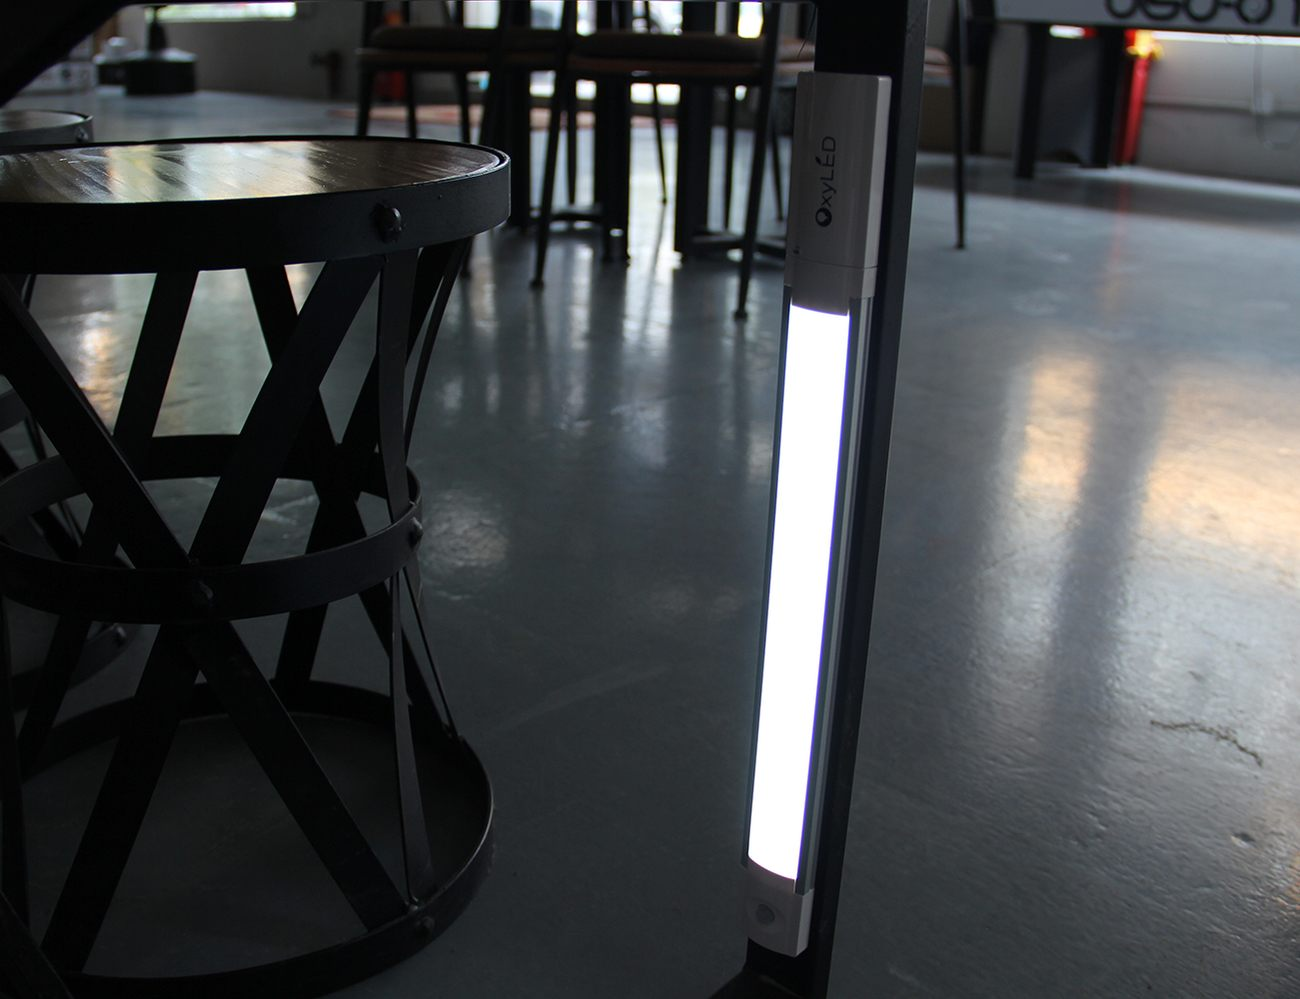 OxySense Motion Activated LED Bar Light